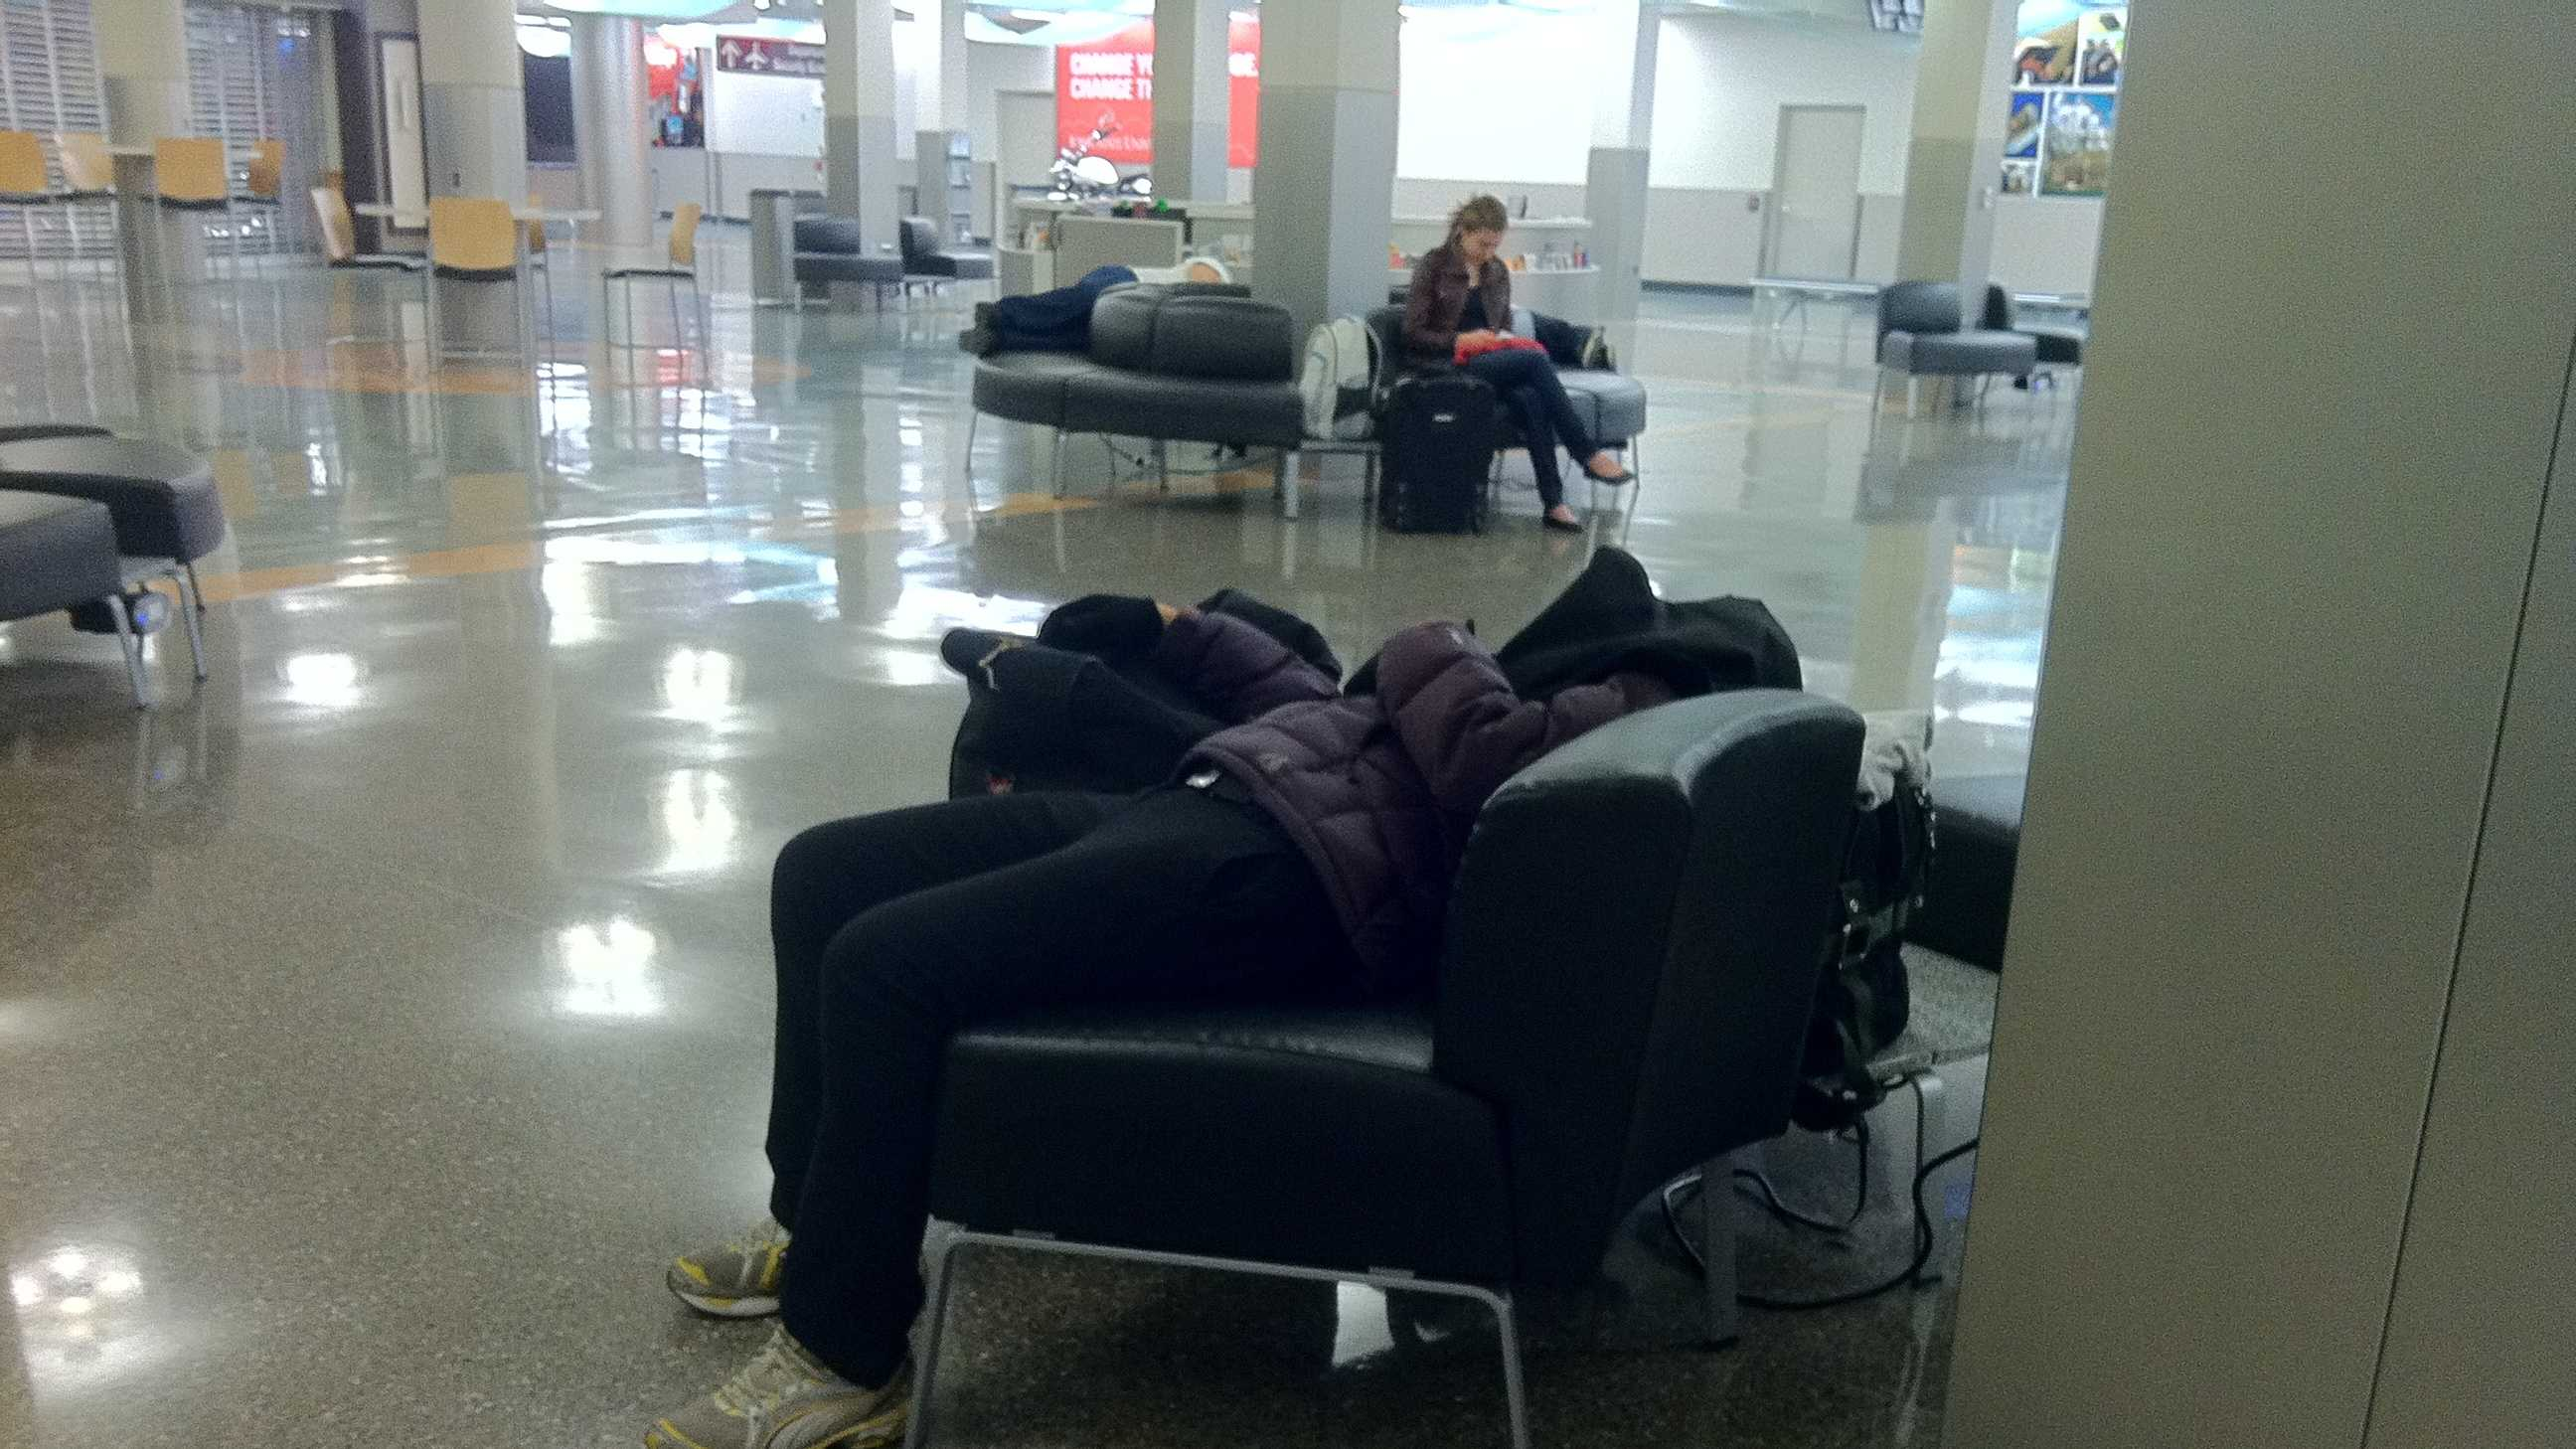 Passengers snuggle in for the night at the Des Moines airport.